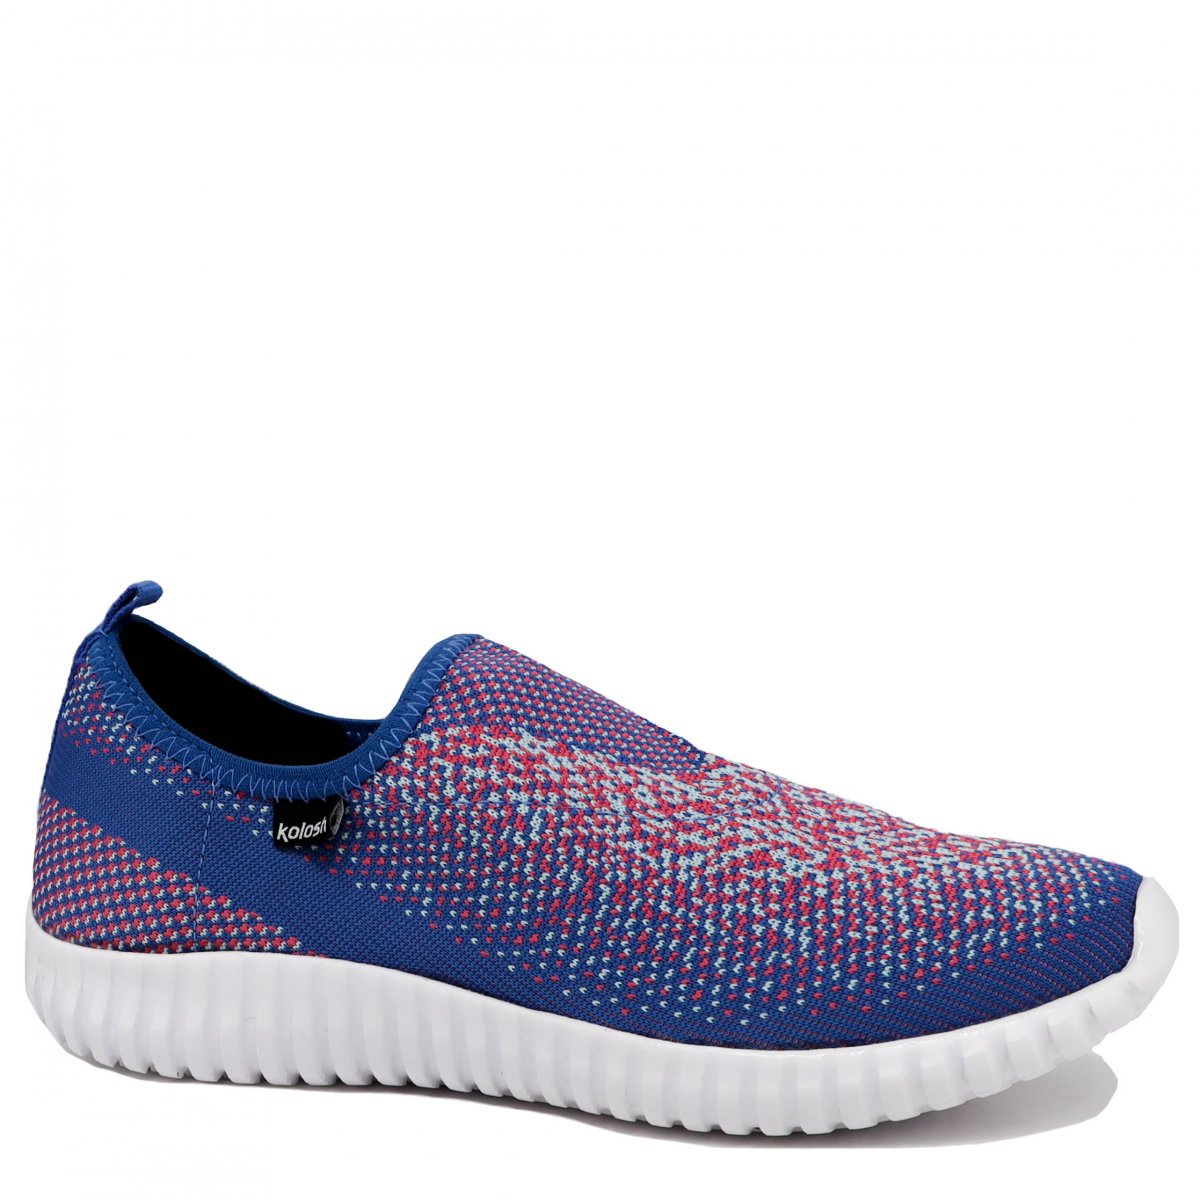 Tênis Kolosh Slip On Casual Azul